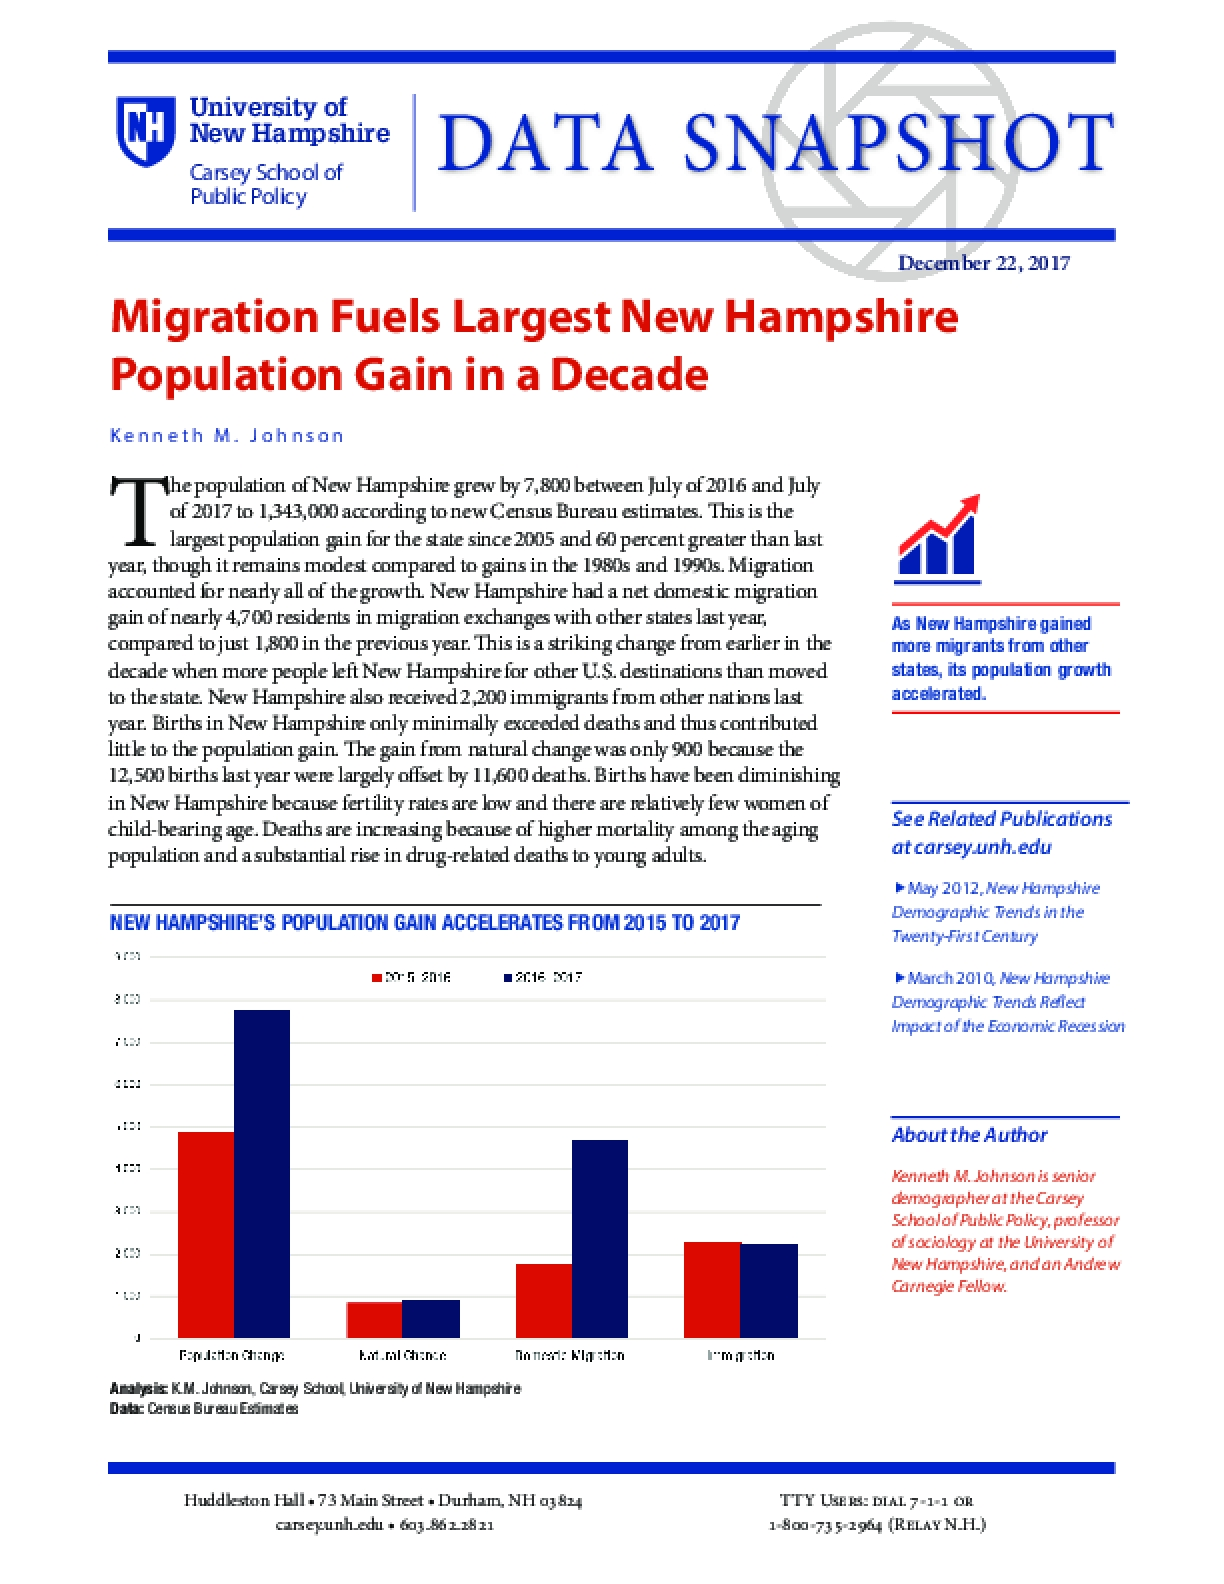 Data Snapshot: Migration Fuels Largest New Hampshire Population Gain in a Decade